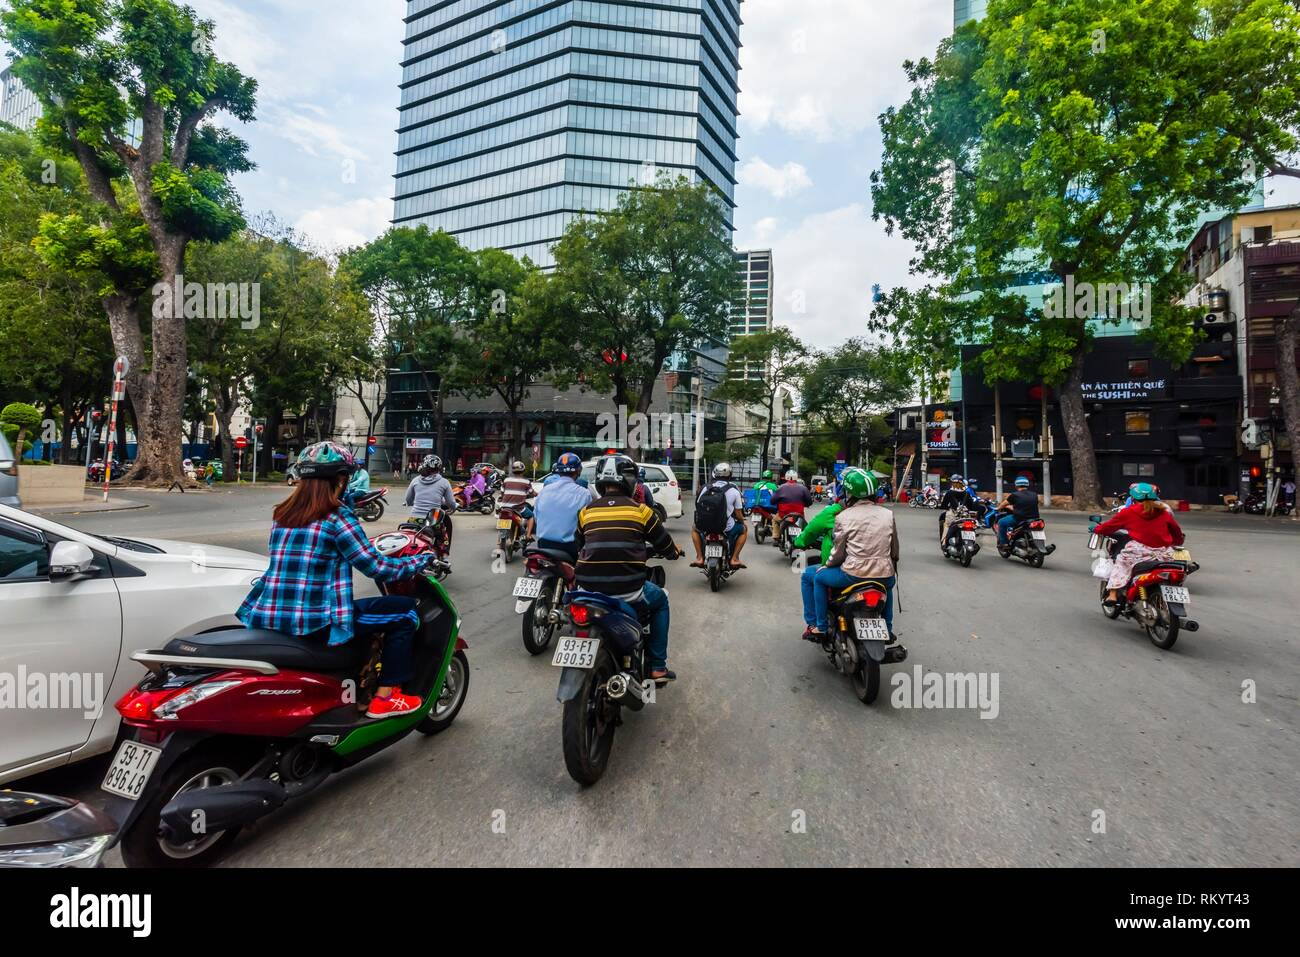 Grab driver (motorcycle taxi), Two-wheeled traffic in Ho Chi Minh City (Saigon), Vietnam. There are over four million motorbikes in the city. - Stock Image